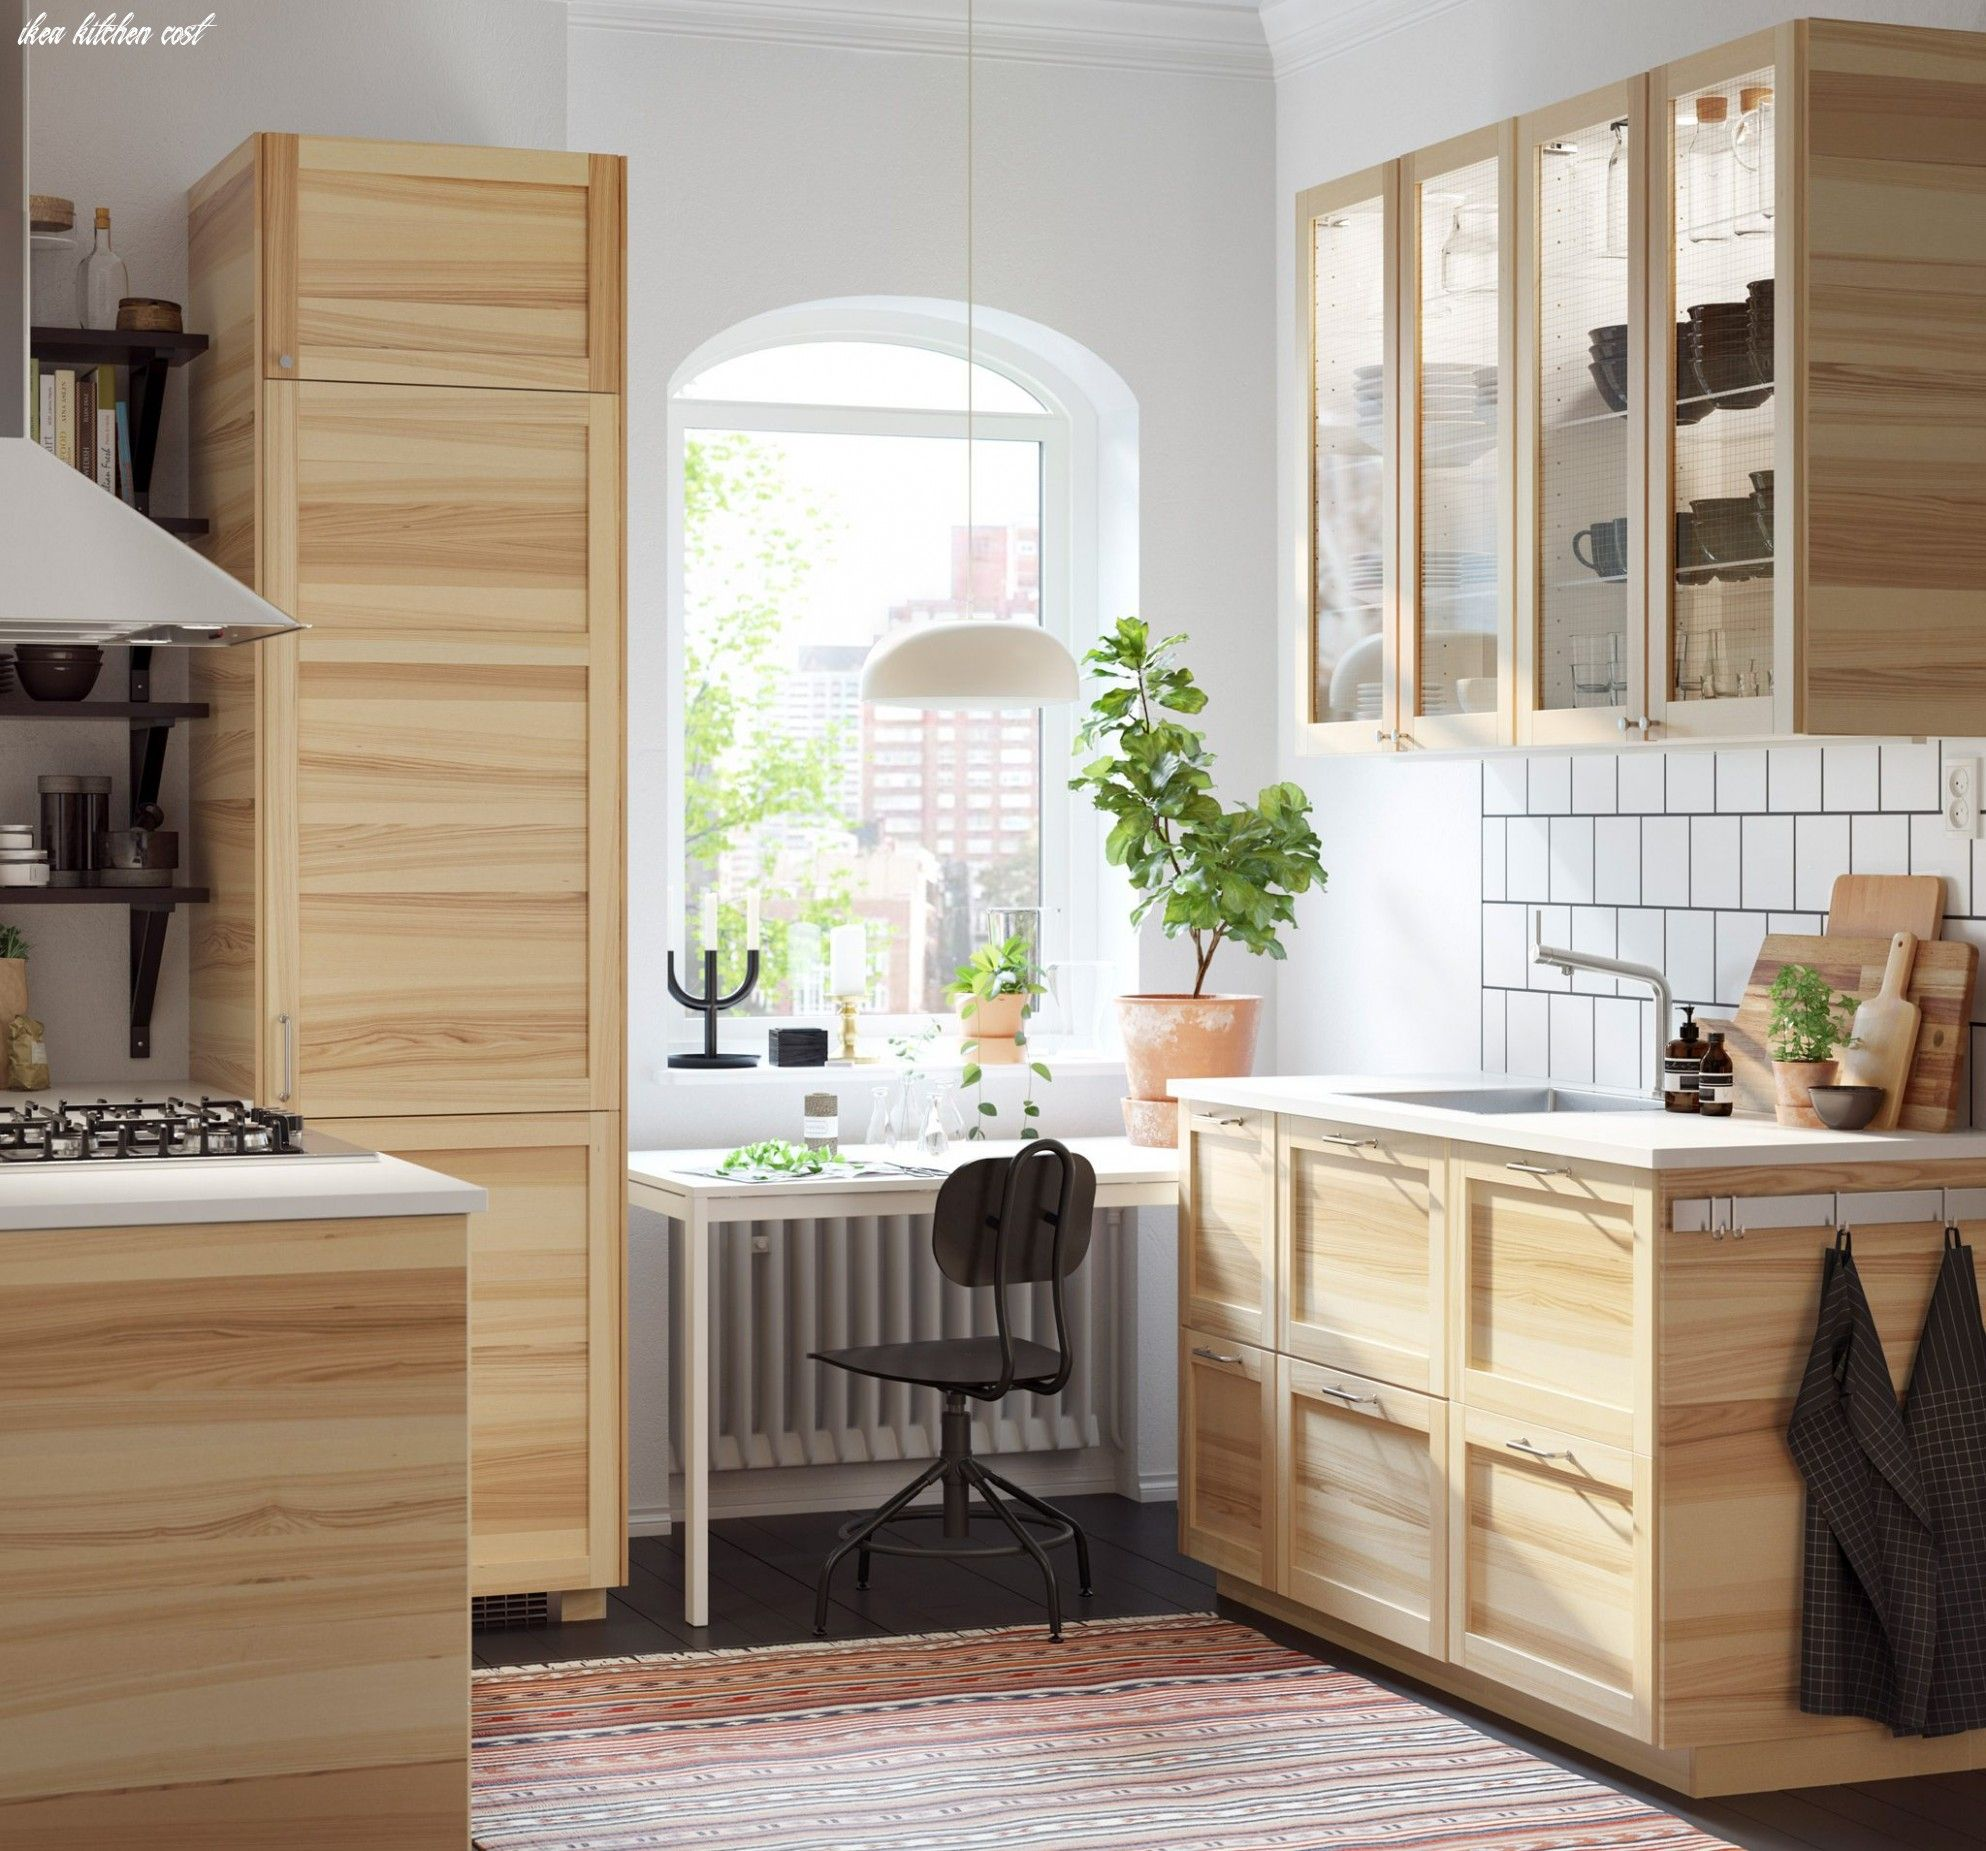 If You Are Looking For Ideas On Upcoming Home Improvement Projects We Got You Covered Refacing Kitchen Cabinets Cost Installing Cabinets Kitchen Cost